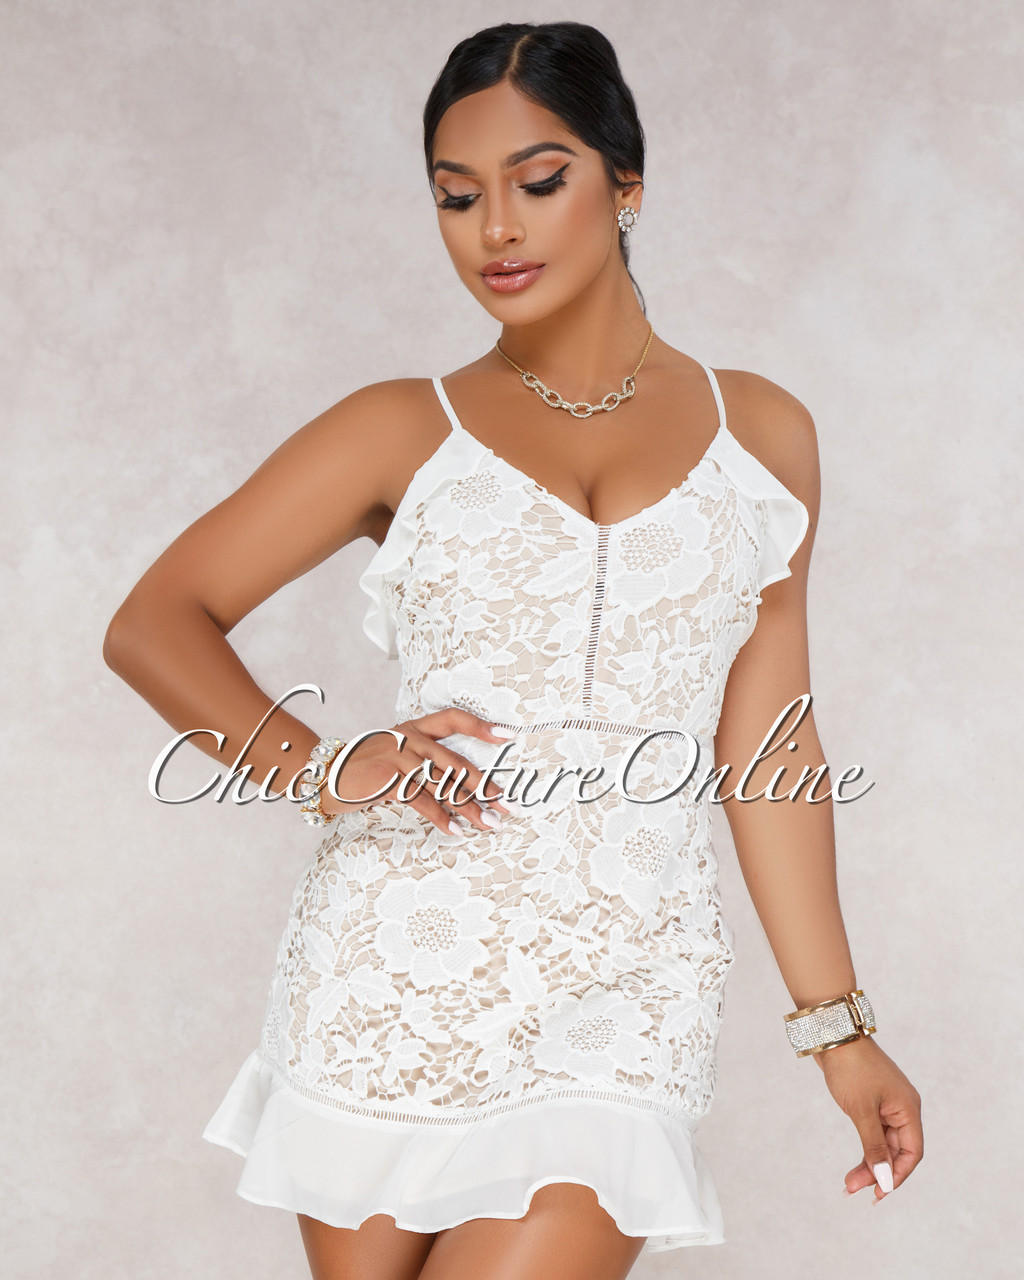 Syria White Nude Crochet Mini Dress